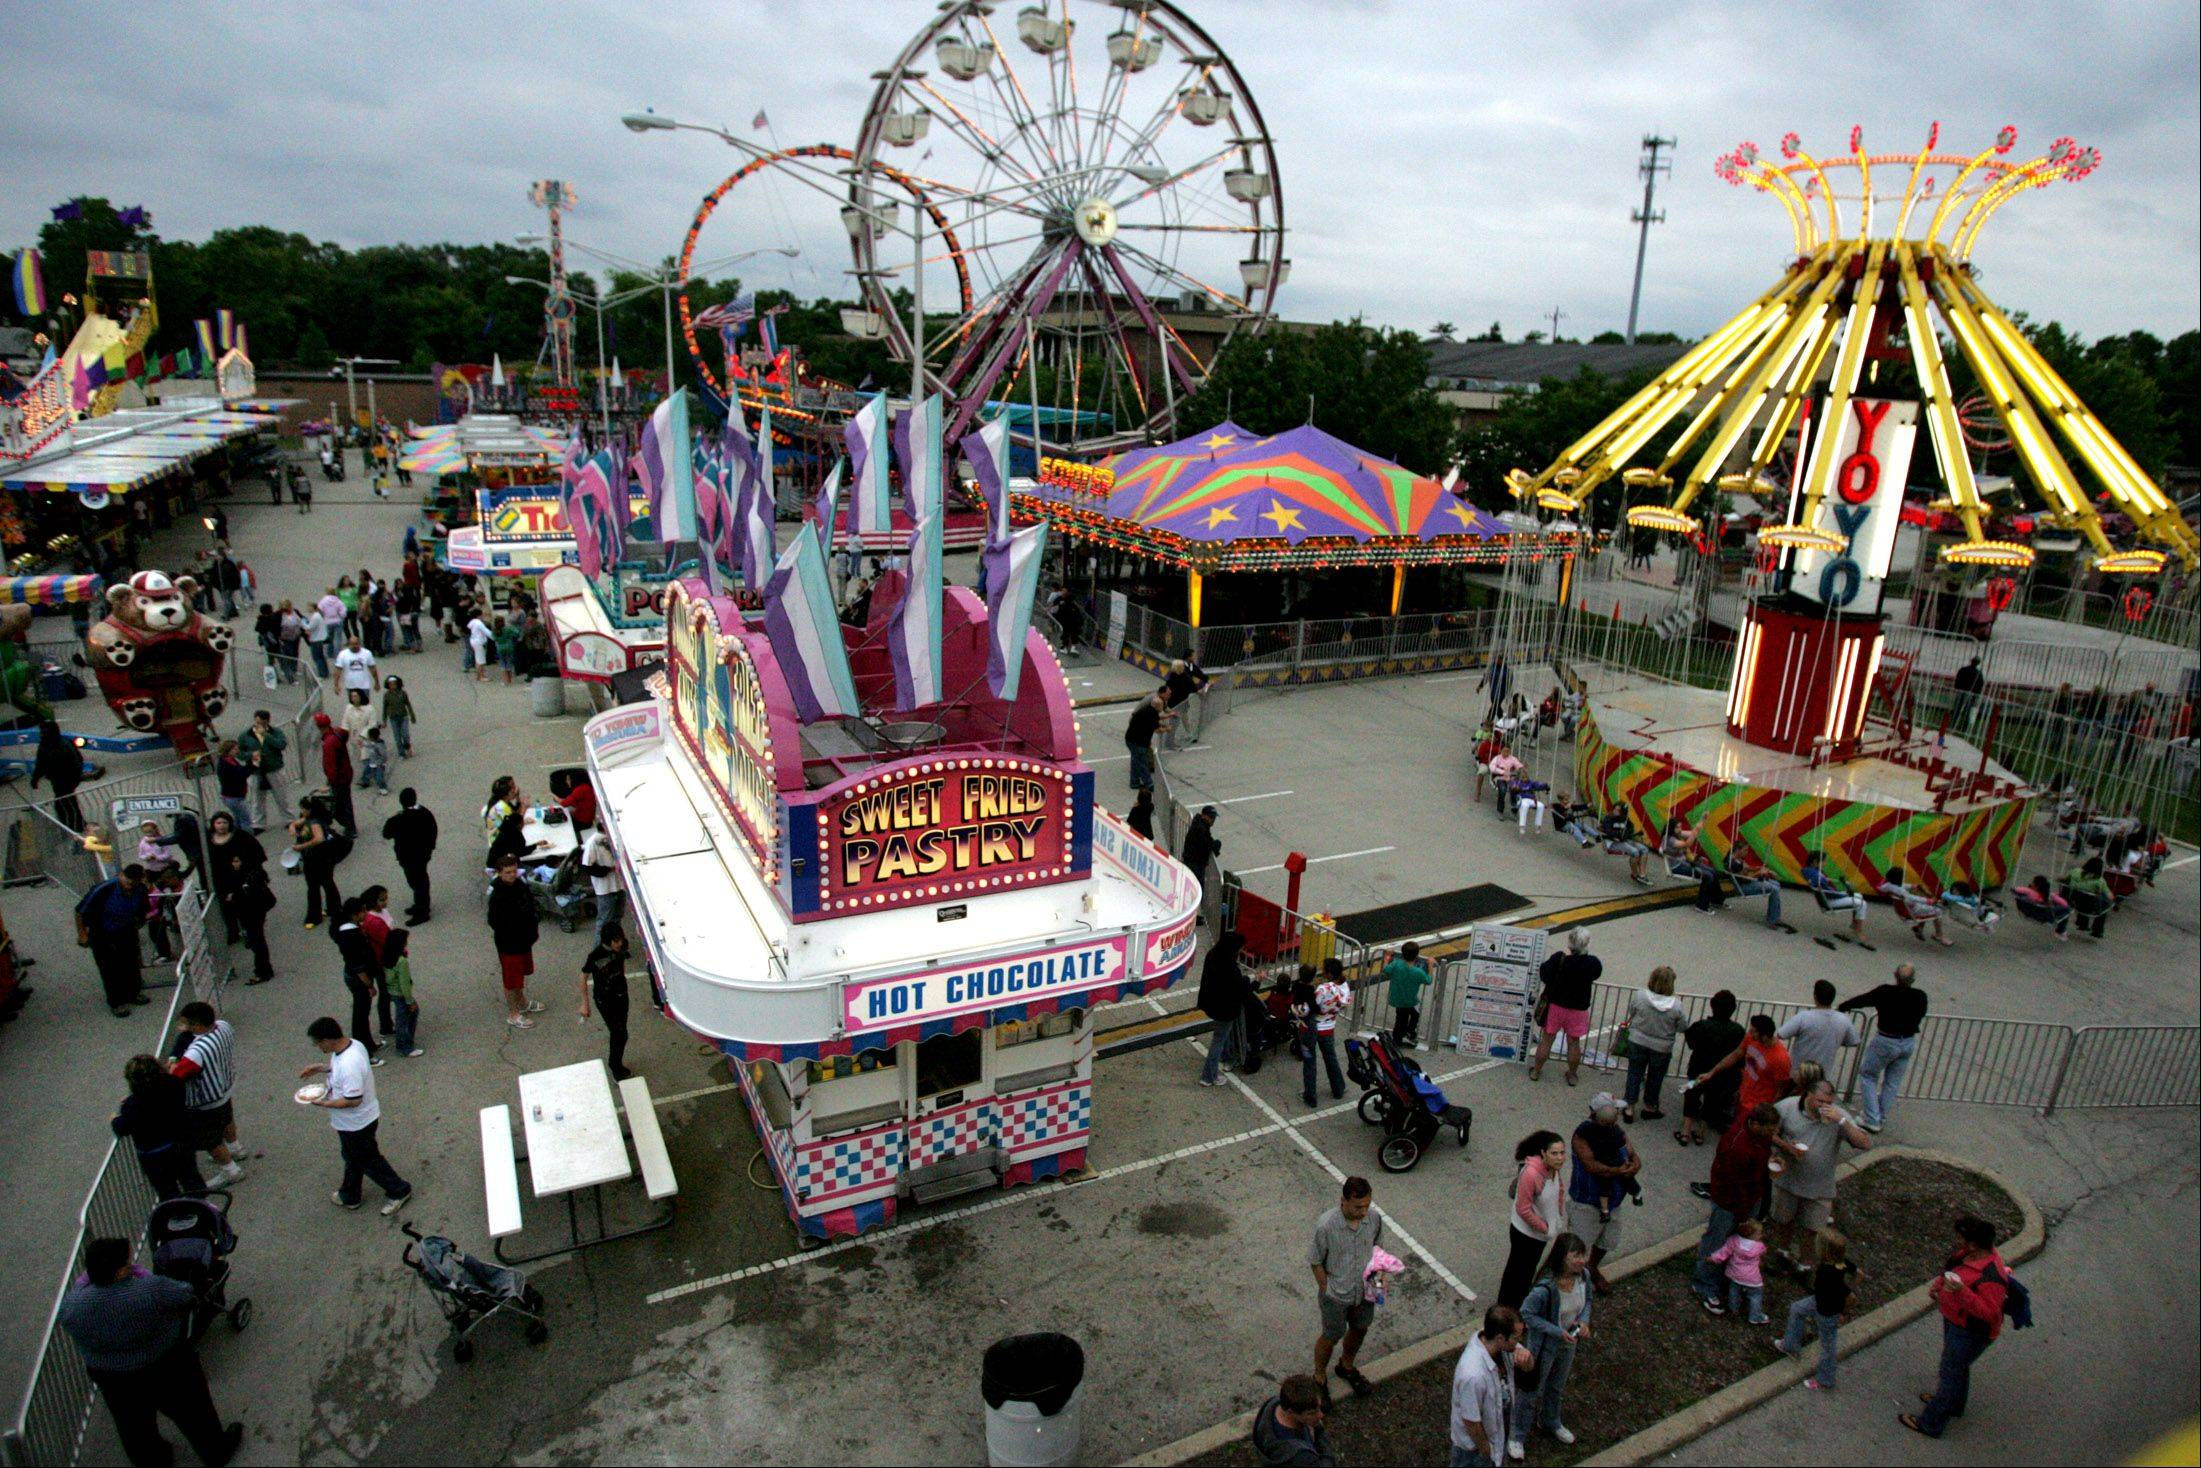 Palatine Jaycees Hometown Fest at Community Park opens today, July 3.